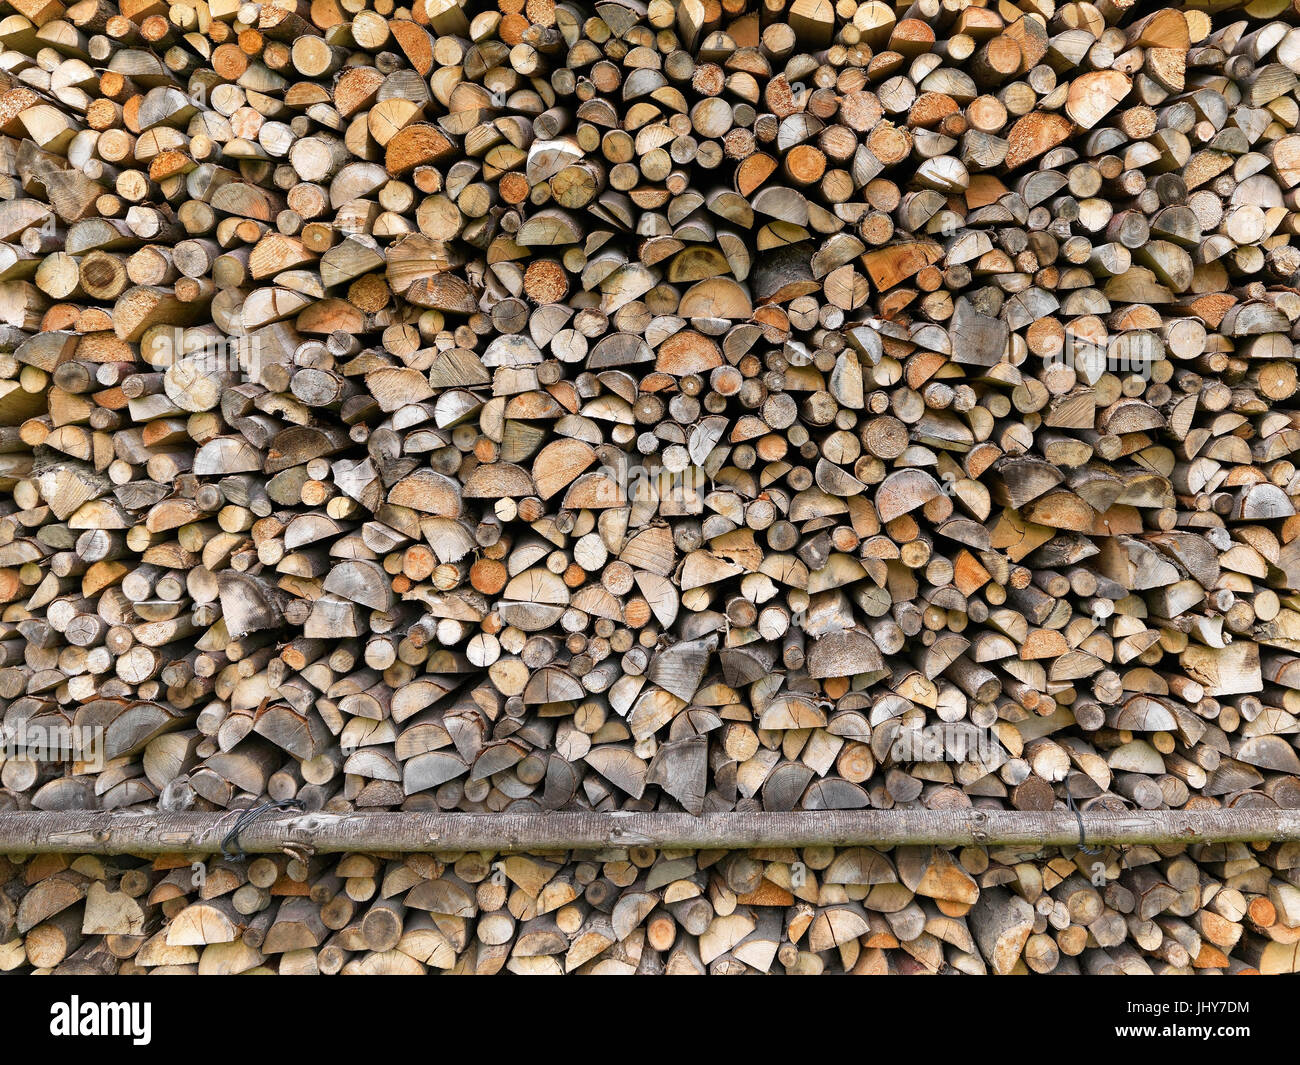 Wooden pile - Firewood, Holzstapel - Firewood - Stock Image